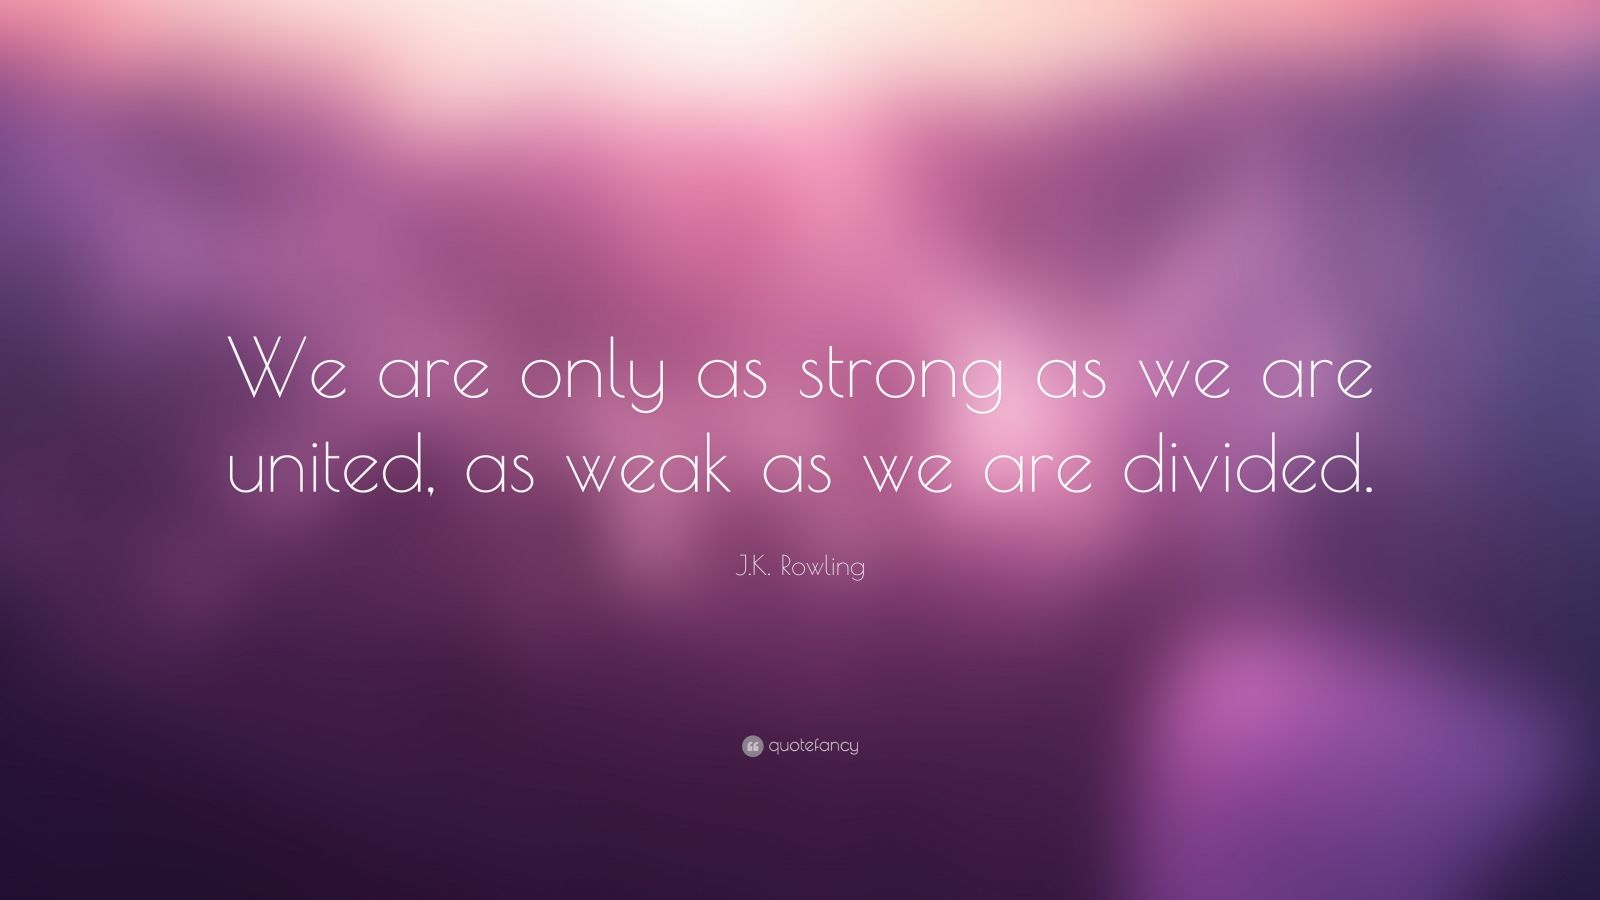 28697-J-K-Rowling-Quote-We-are-only-as-strong-as-we-are-united-as-weak.jpg